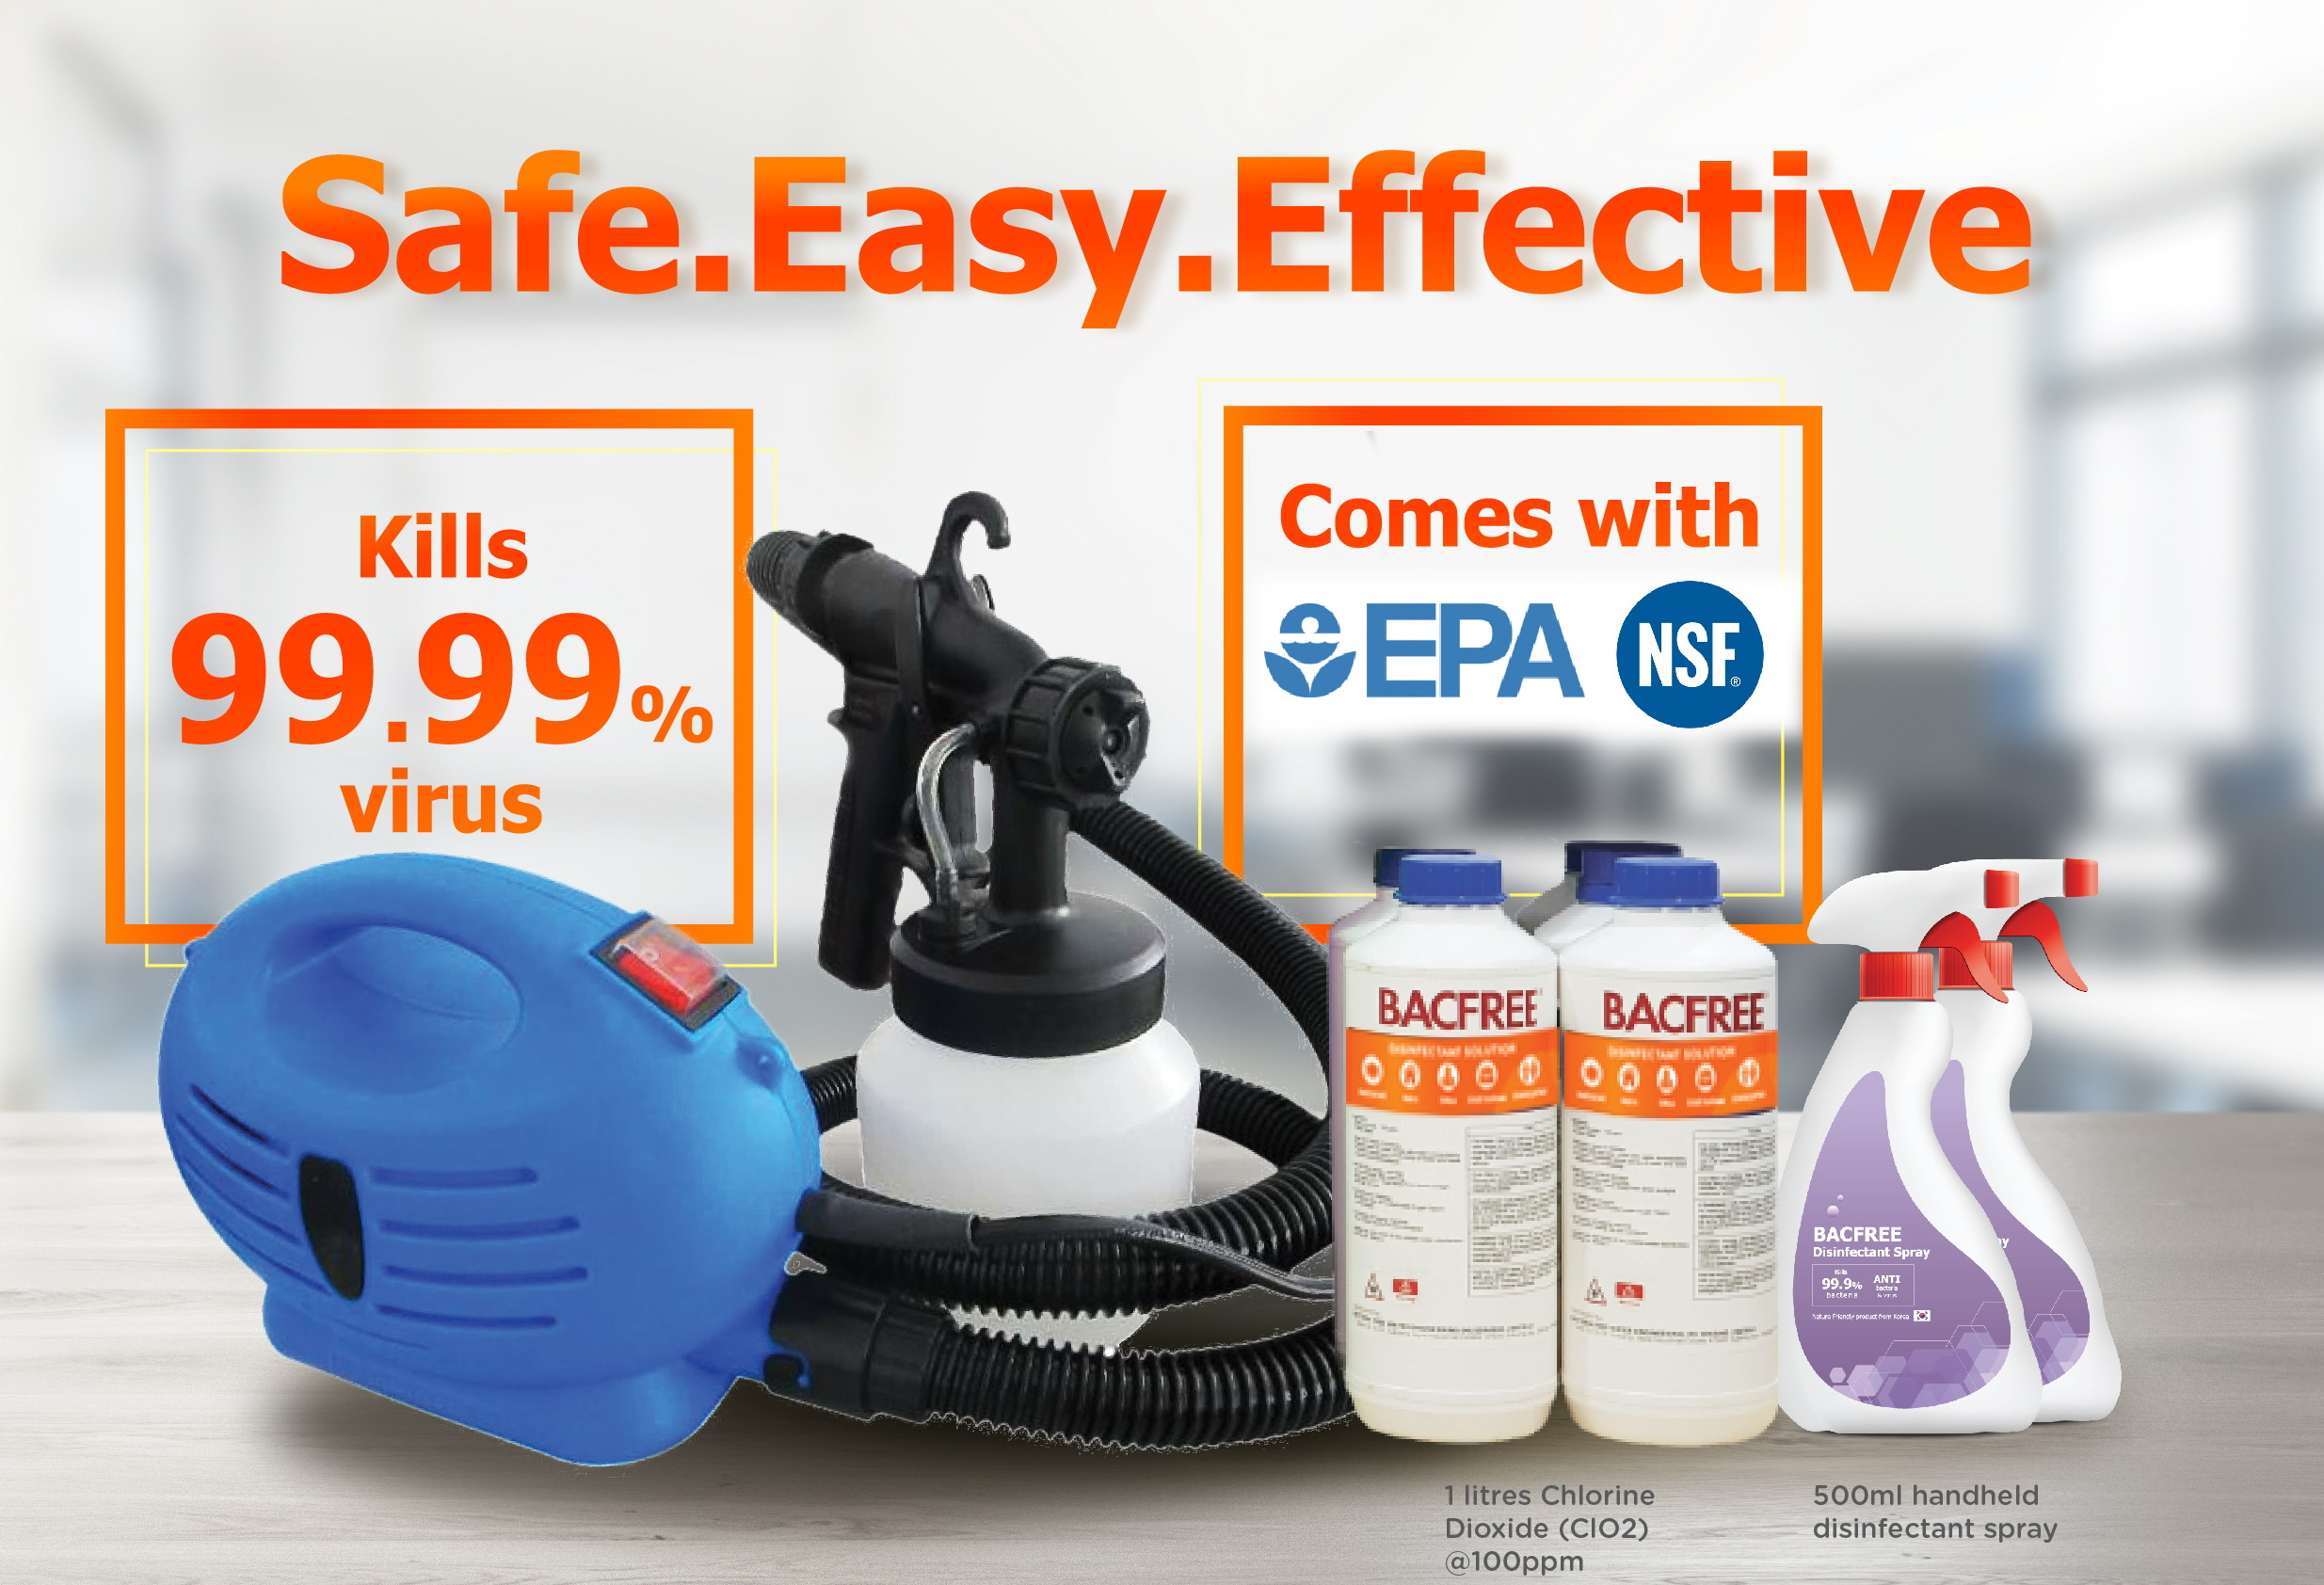 Bacfree Compact DIY Disinfection Machine